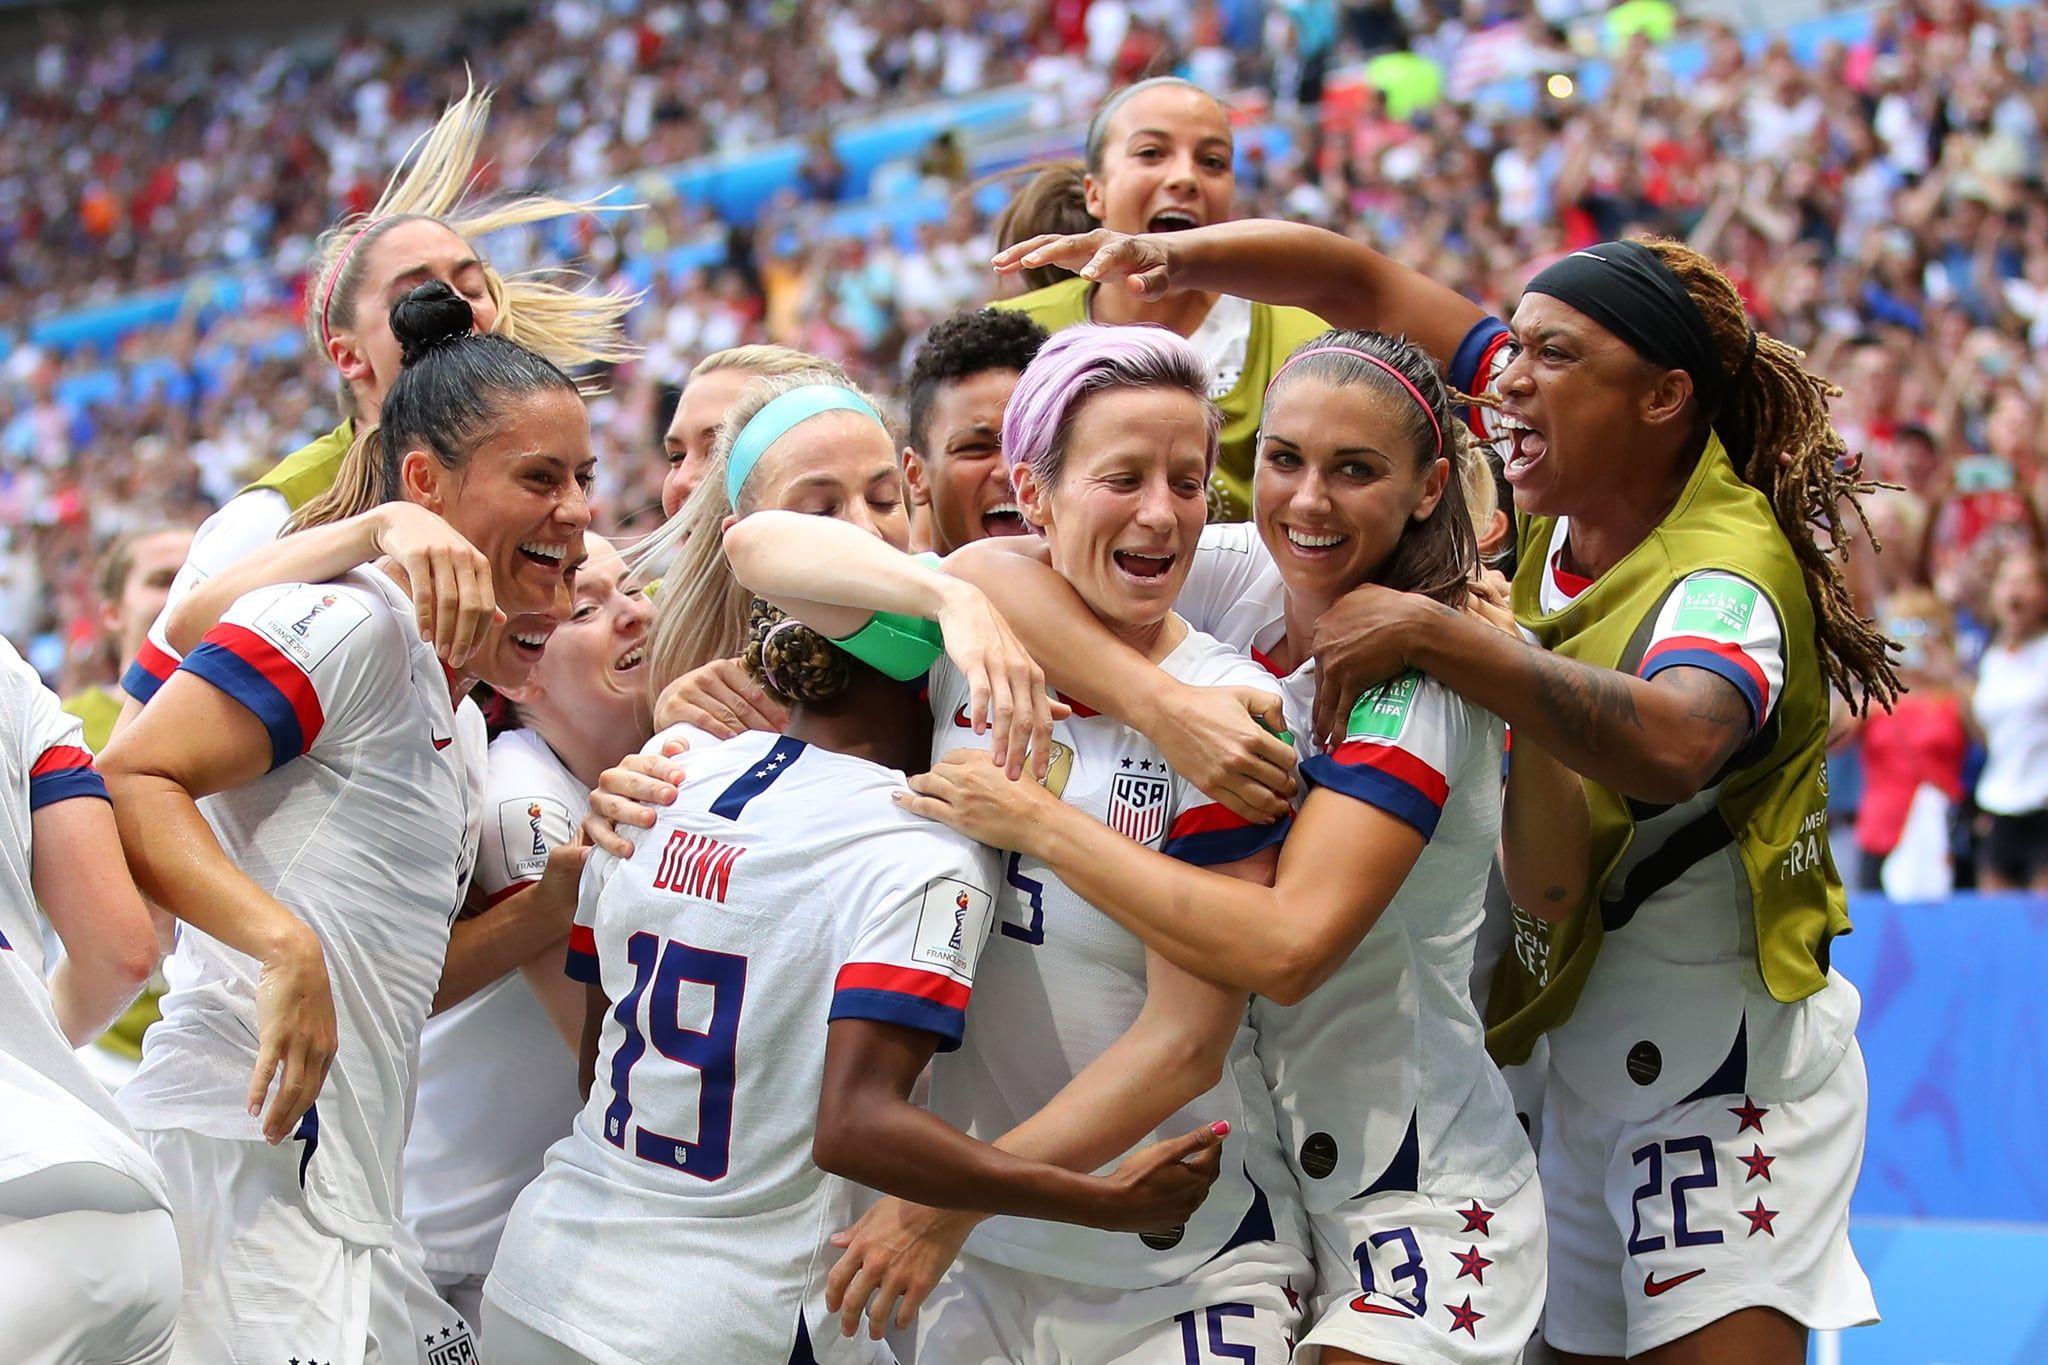 Bow Down To Your Queens The Dominant Uswnt Just Won Their 4th World Cup Fifa Women S World Cup Women S Soccer Uswnt